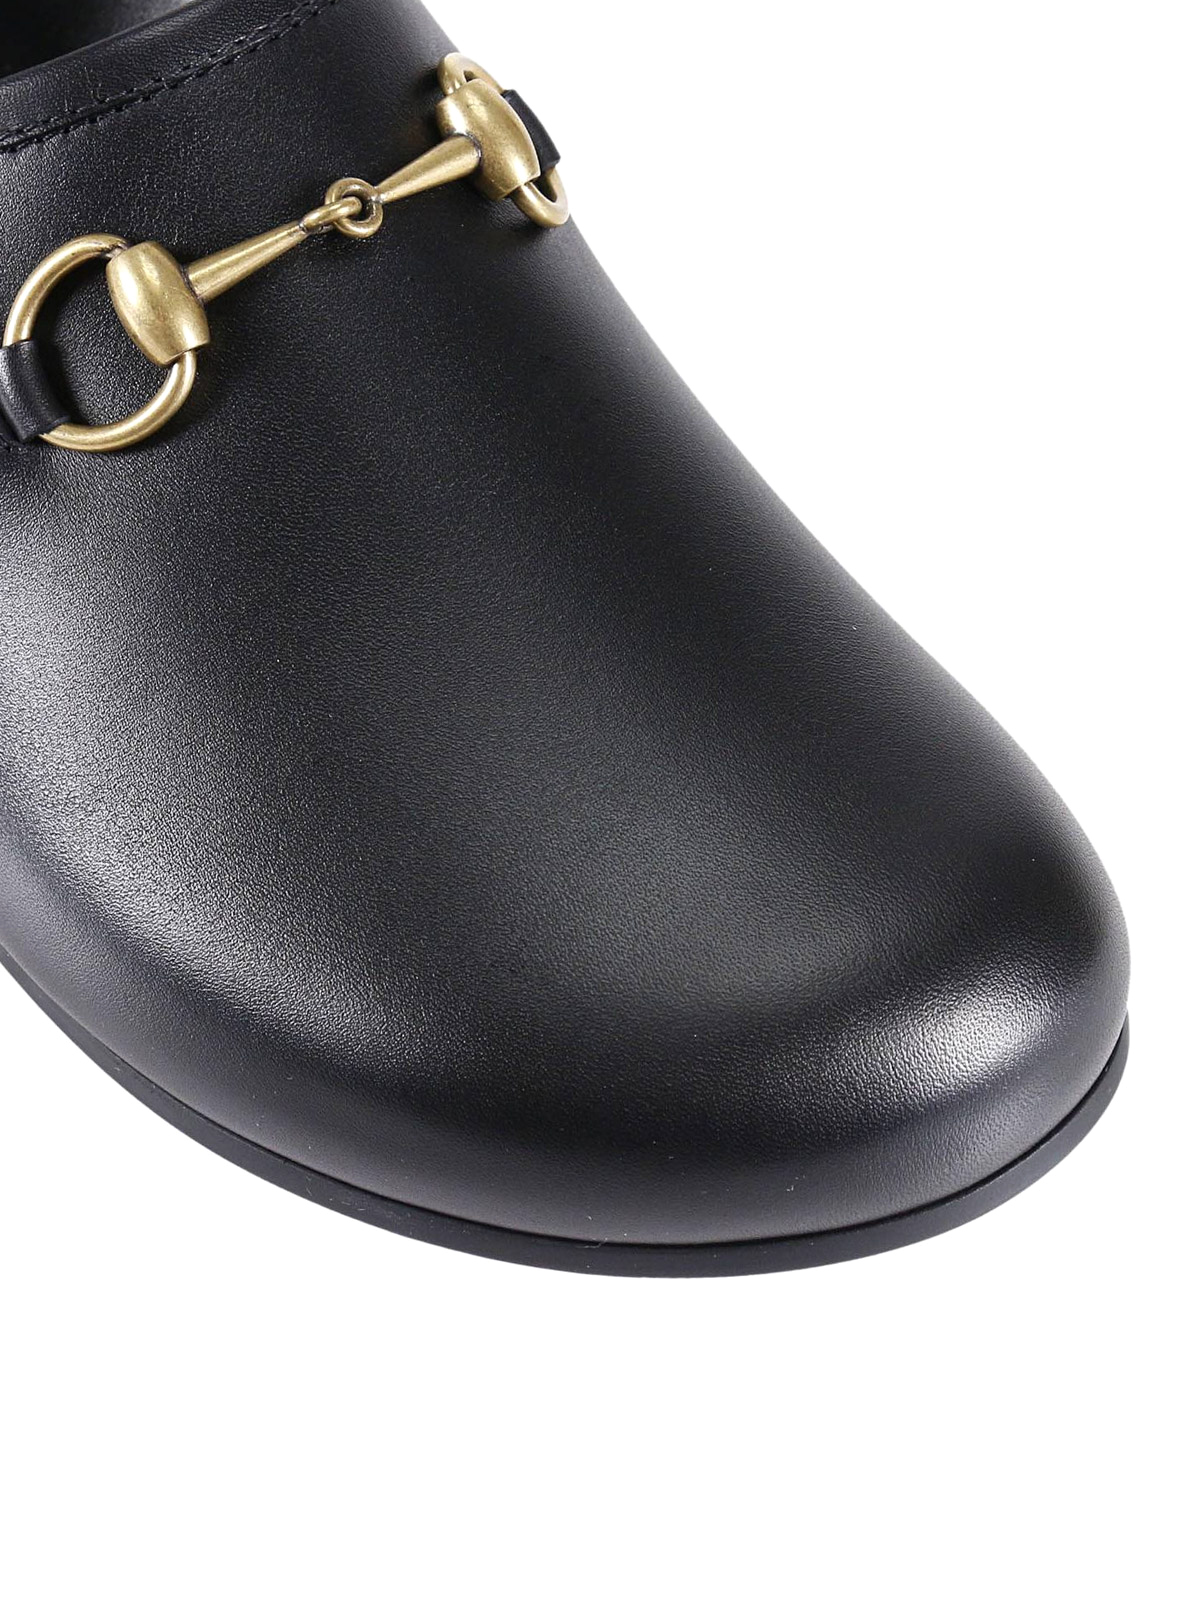 Gucci Horsebit Leather Slippers Mules Shoes 473491